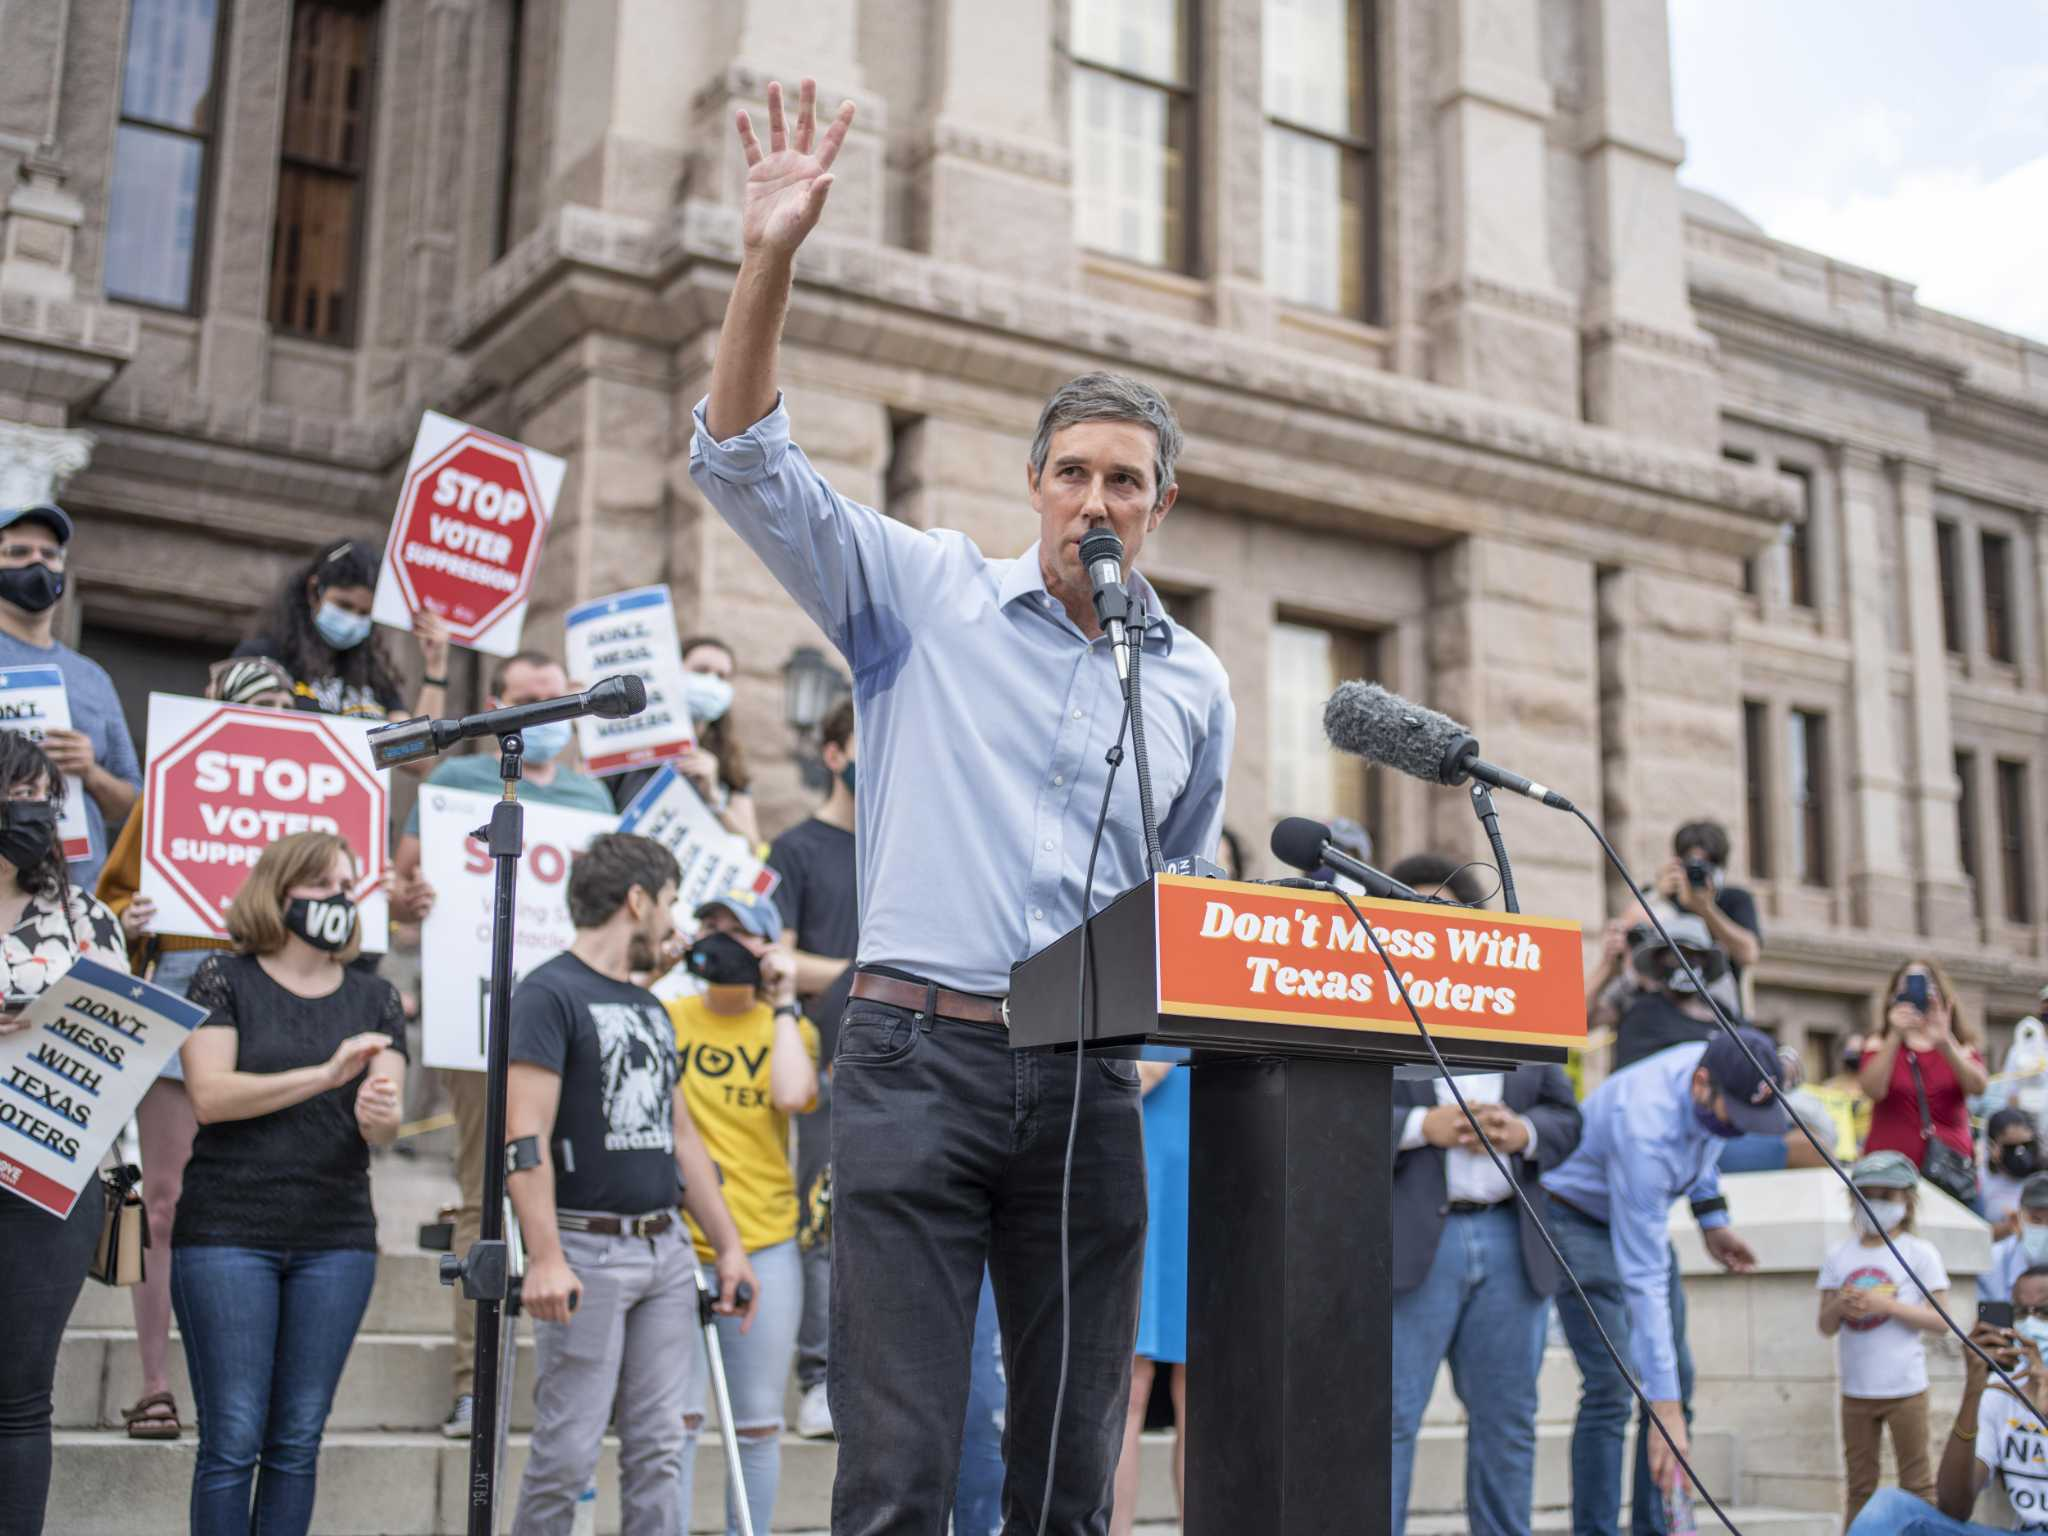 Julián Castro and Beto O'Rourke rally against bills they say suppress minority voters